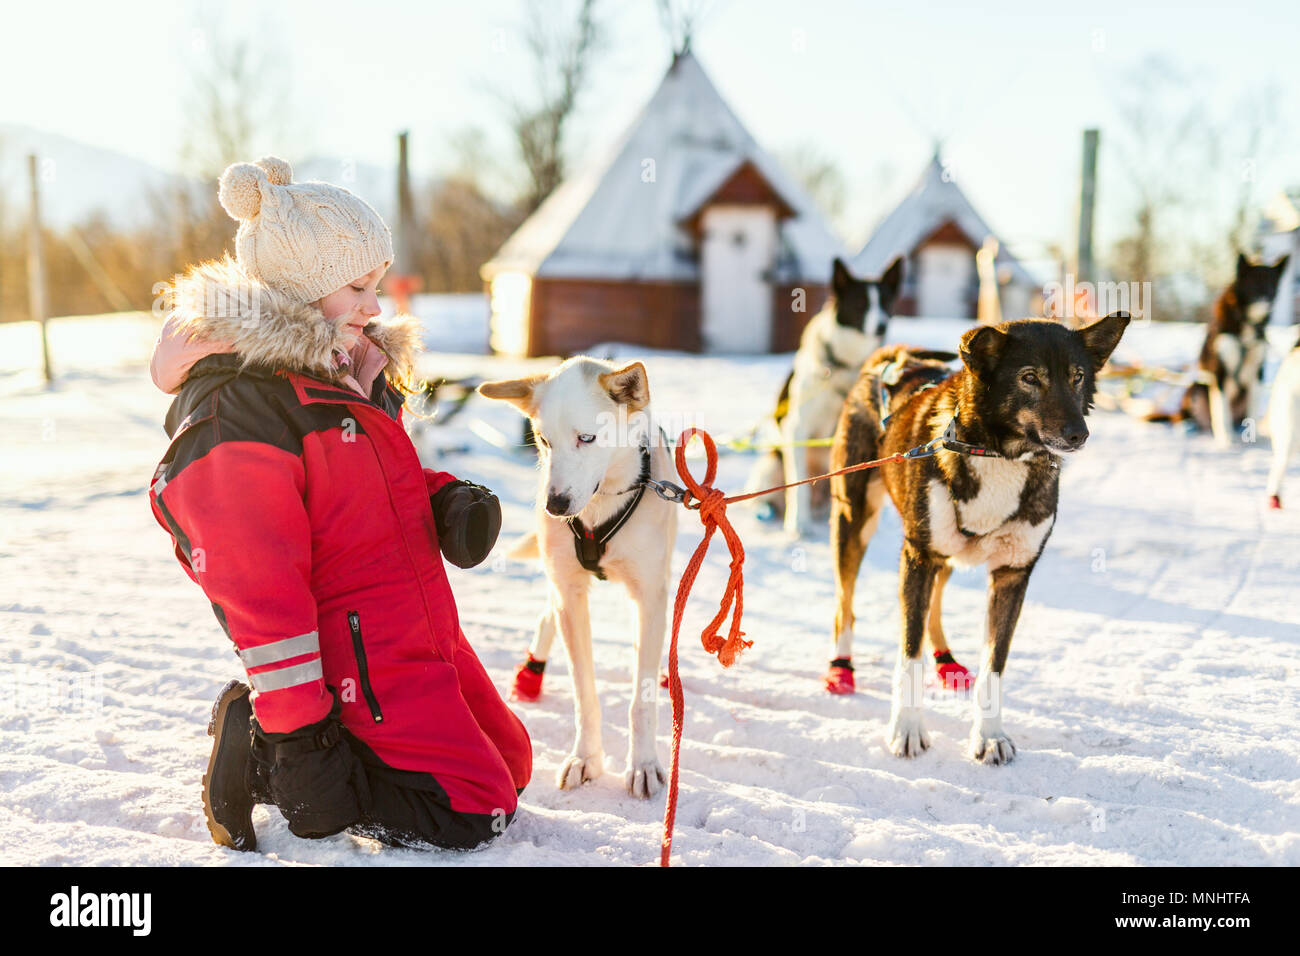 Sled Dog In Kennel Stock Photos Images Snow Hd Wiring Harness Adorable Girl Having A Cuddle With Husky Farm Northern Norway